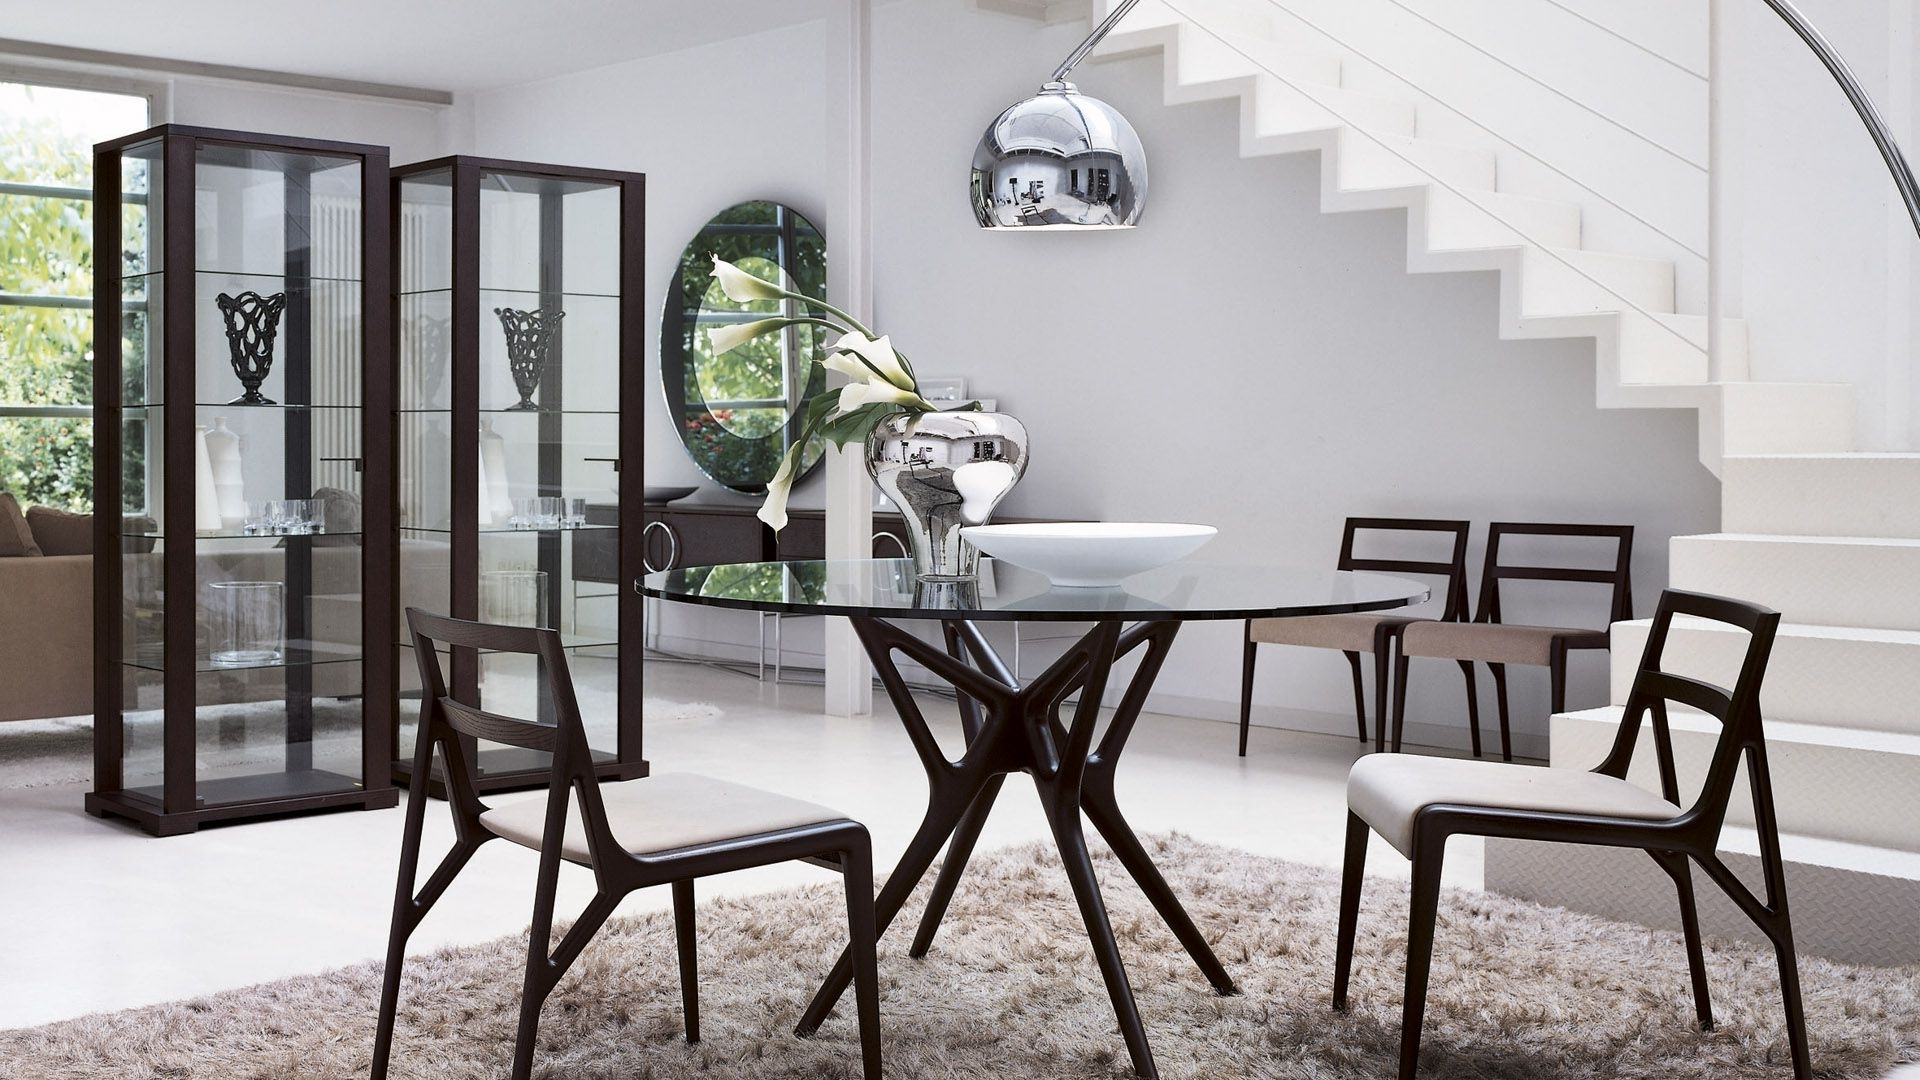 Perth Glass Dining Tables Within Well Liked Contemporary, Modern Luxury Furniture Perth Stores – Contempo (View 20 of 25)